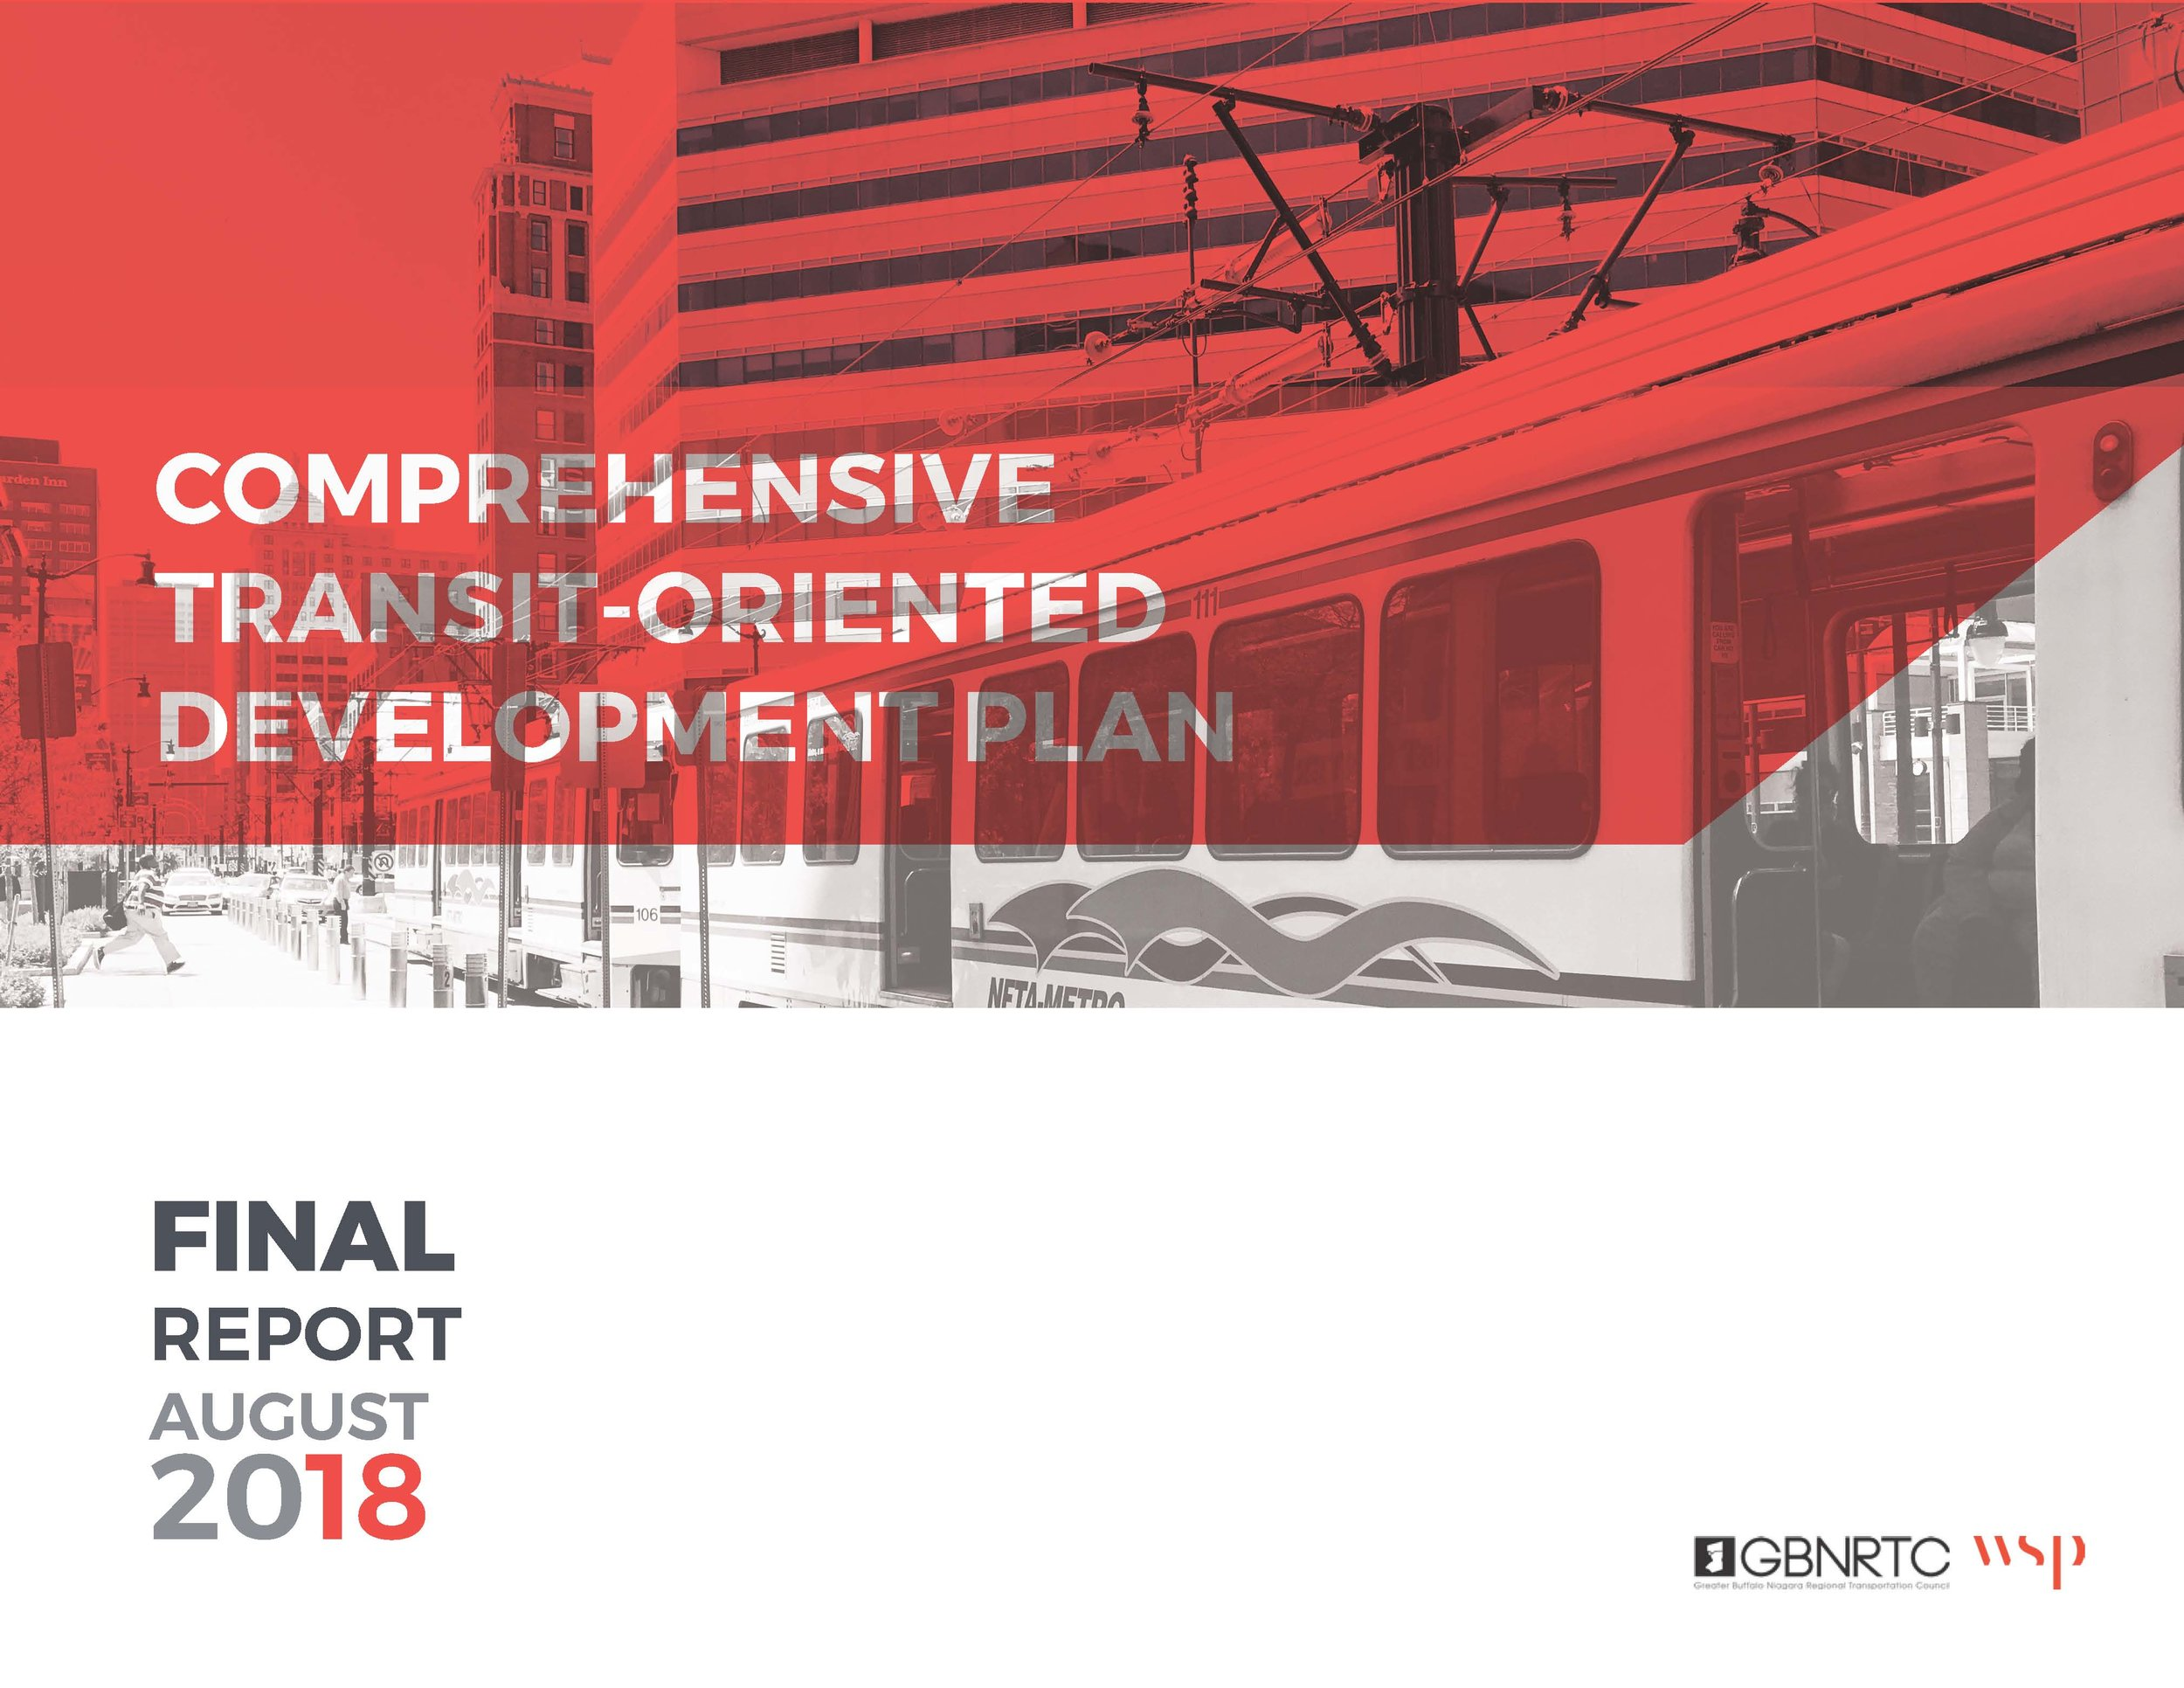 Comprehensive Transit-Oriented Development Plan - Final Report August 2018